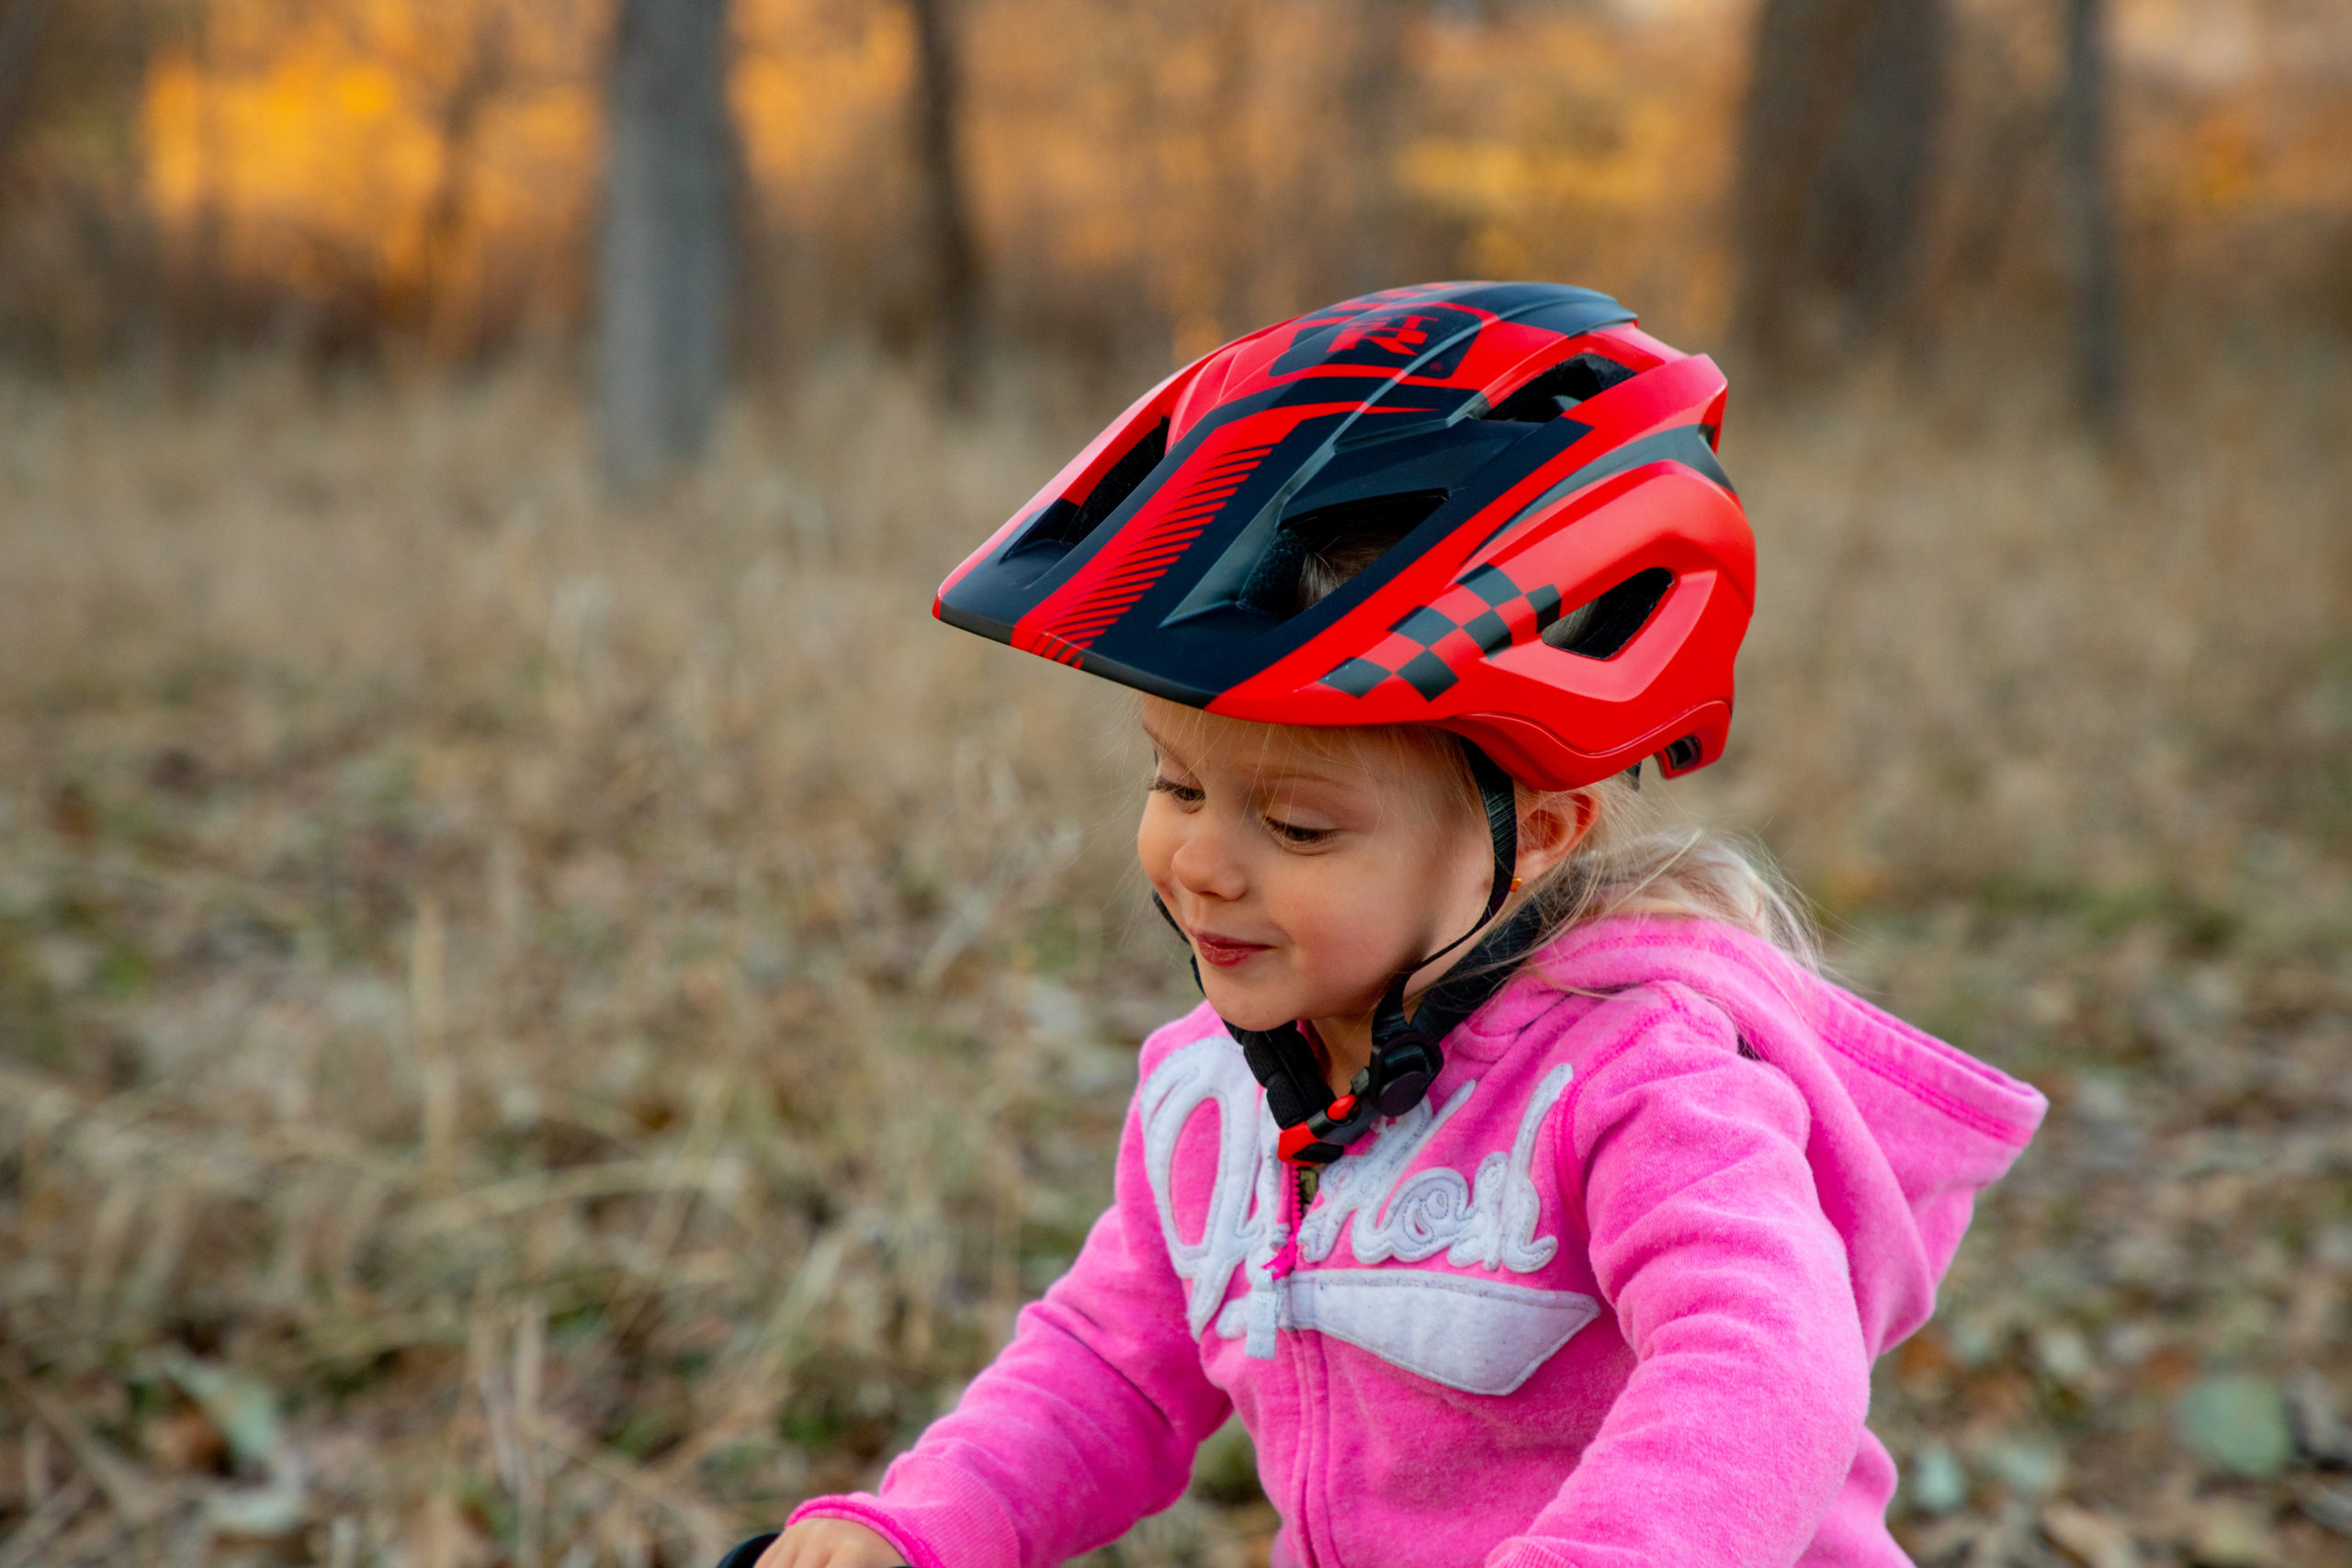 Girl wearingred ST-R Full-Face Helmet with detached face mask